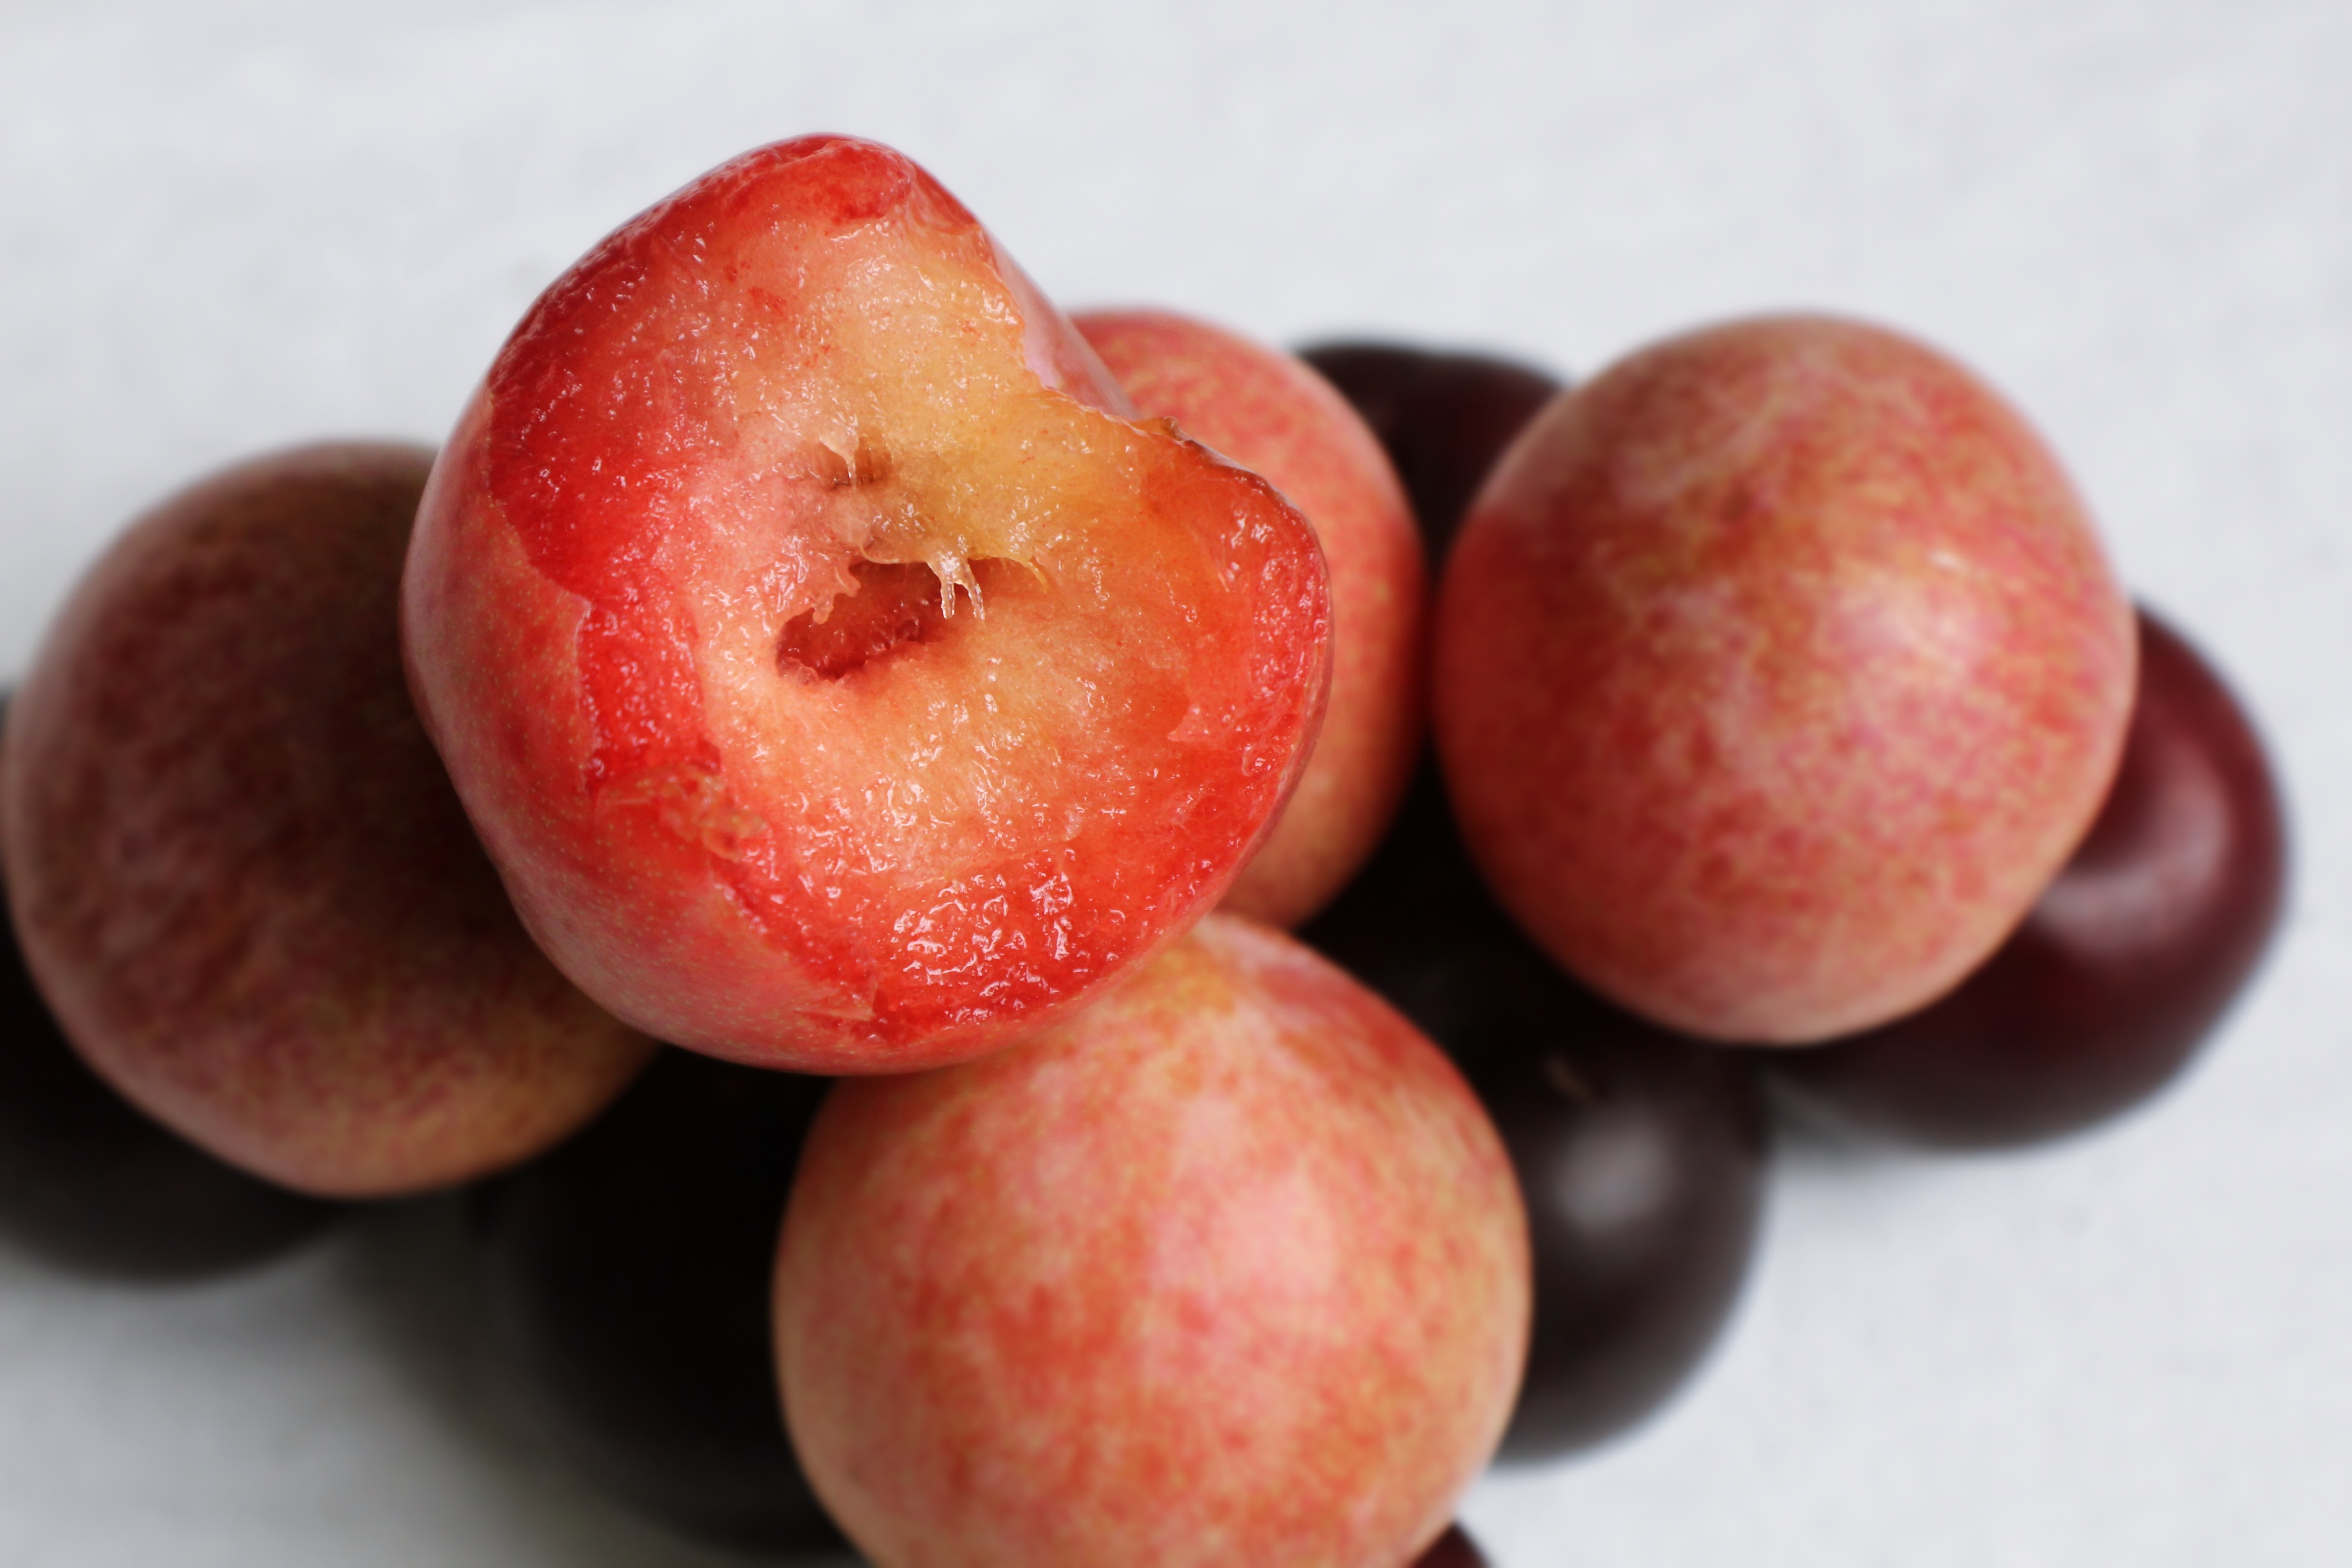 plums are in season in the uk in September